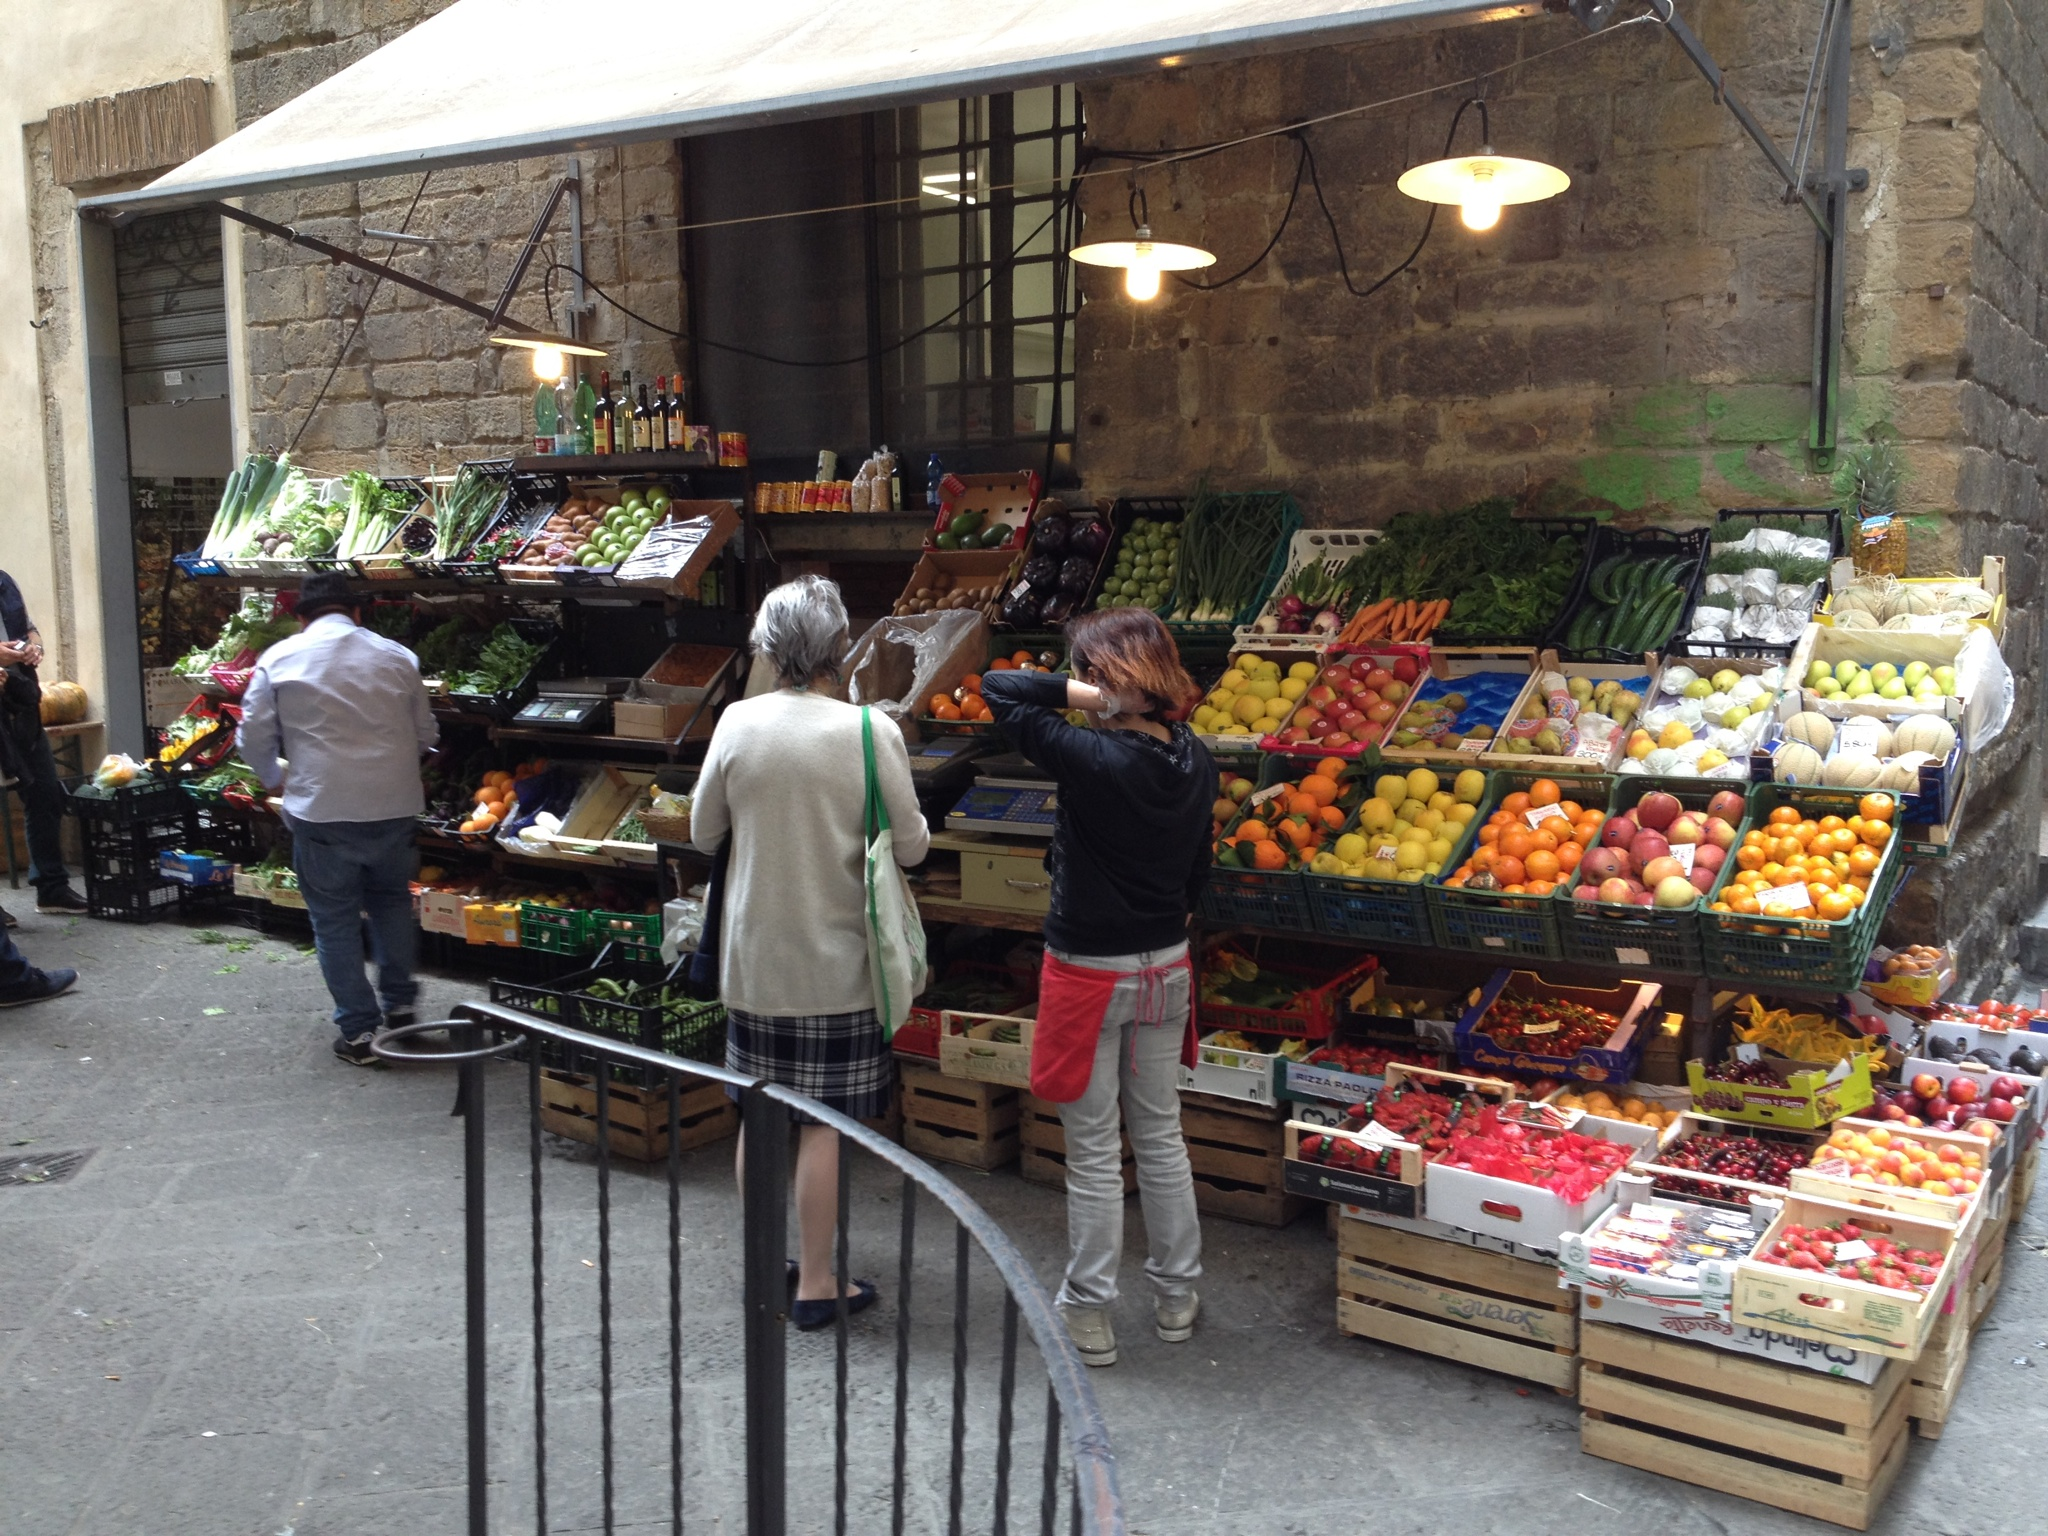 A typical open air market in Florence